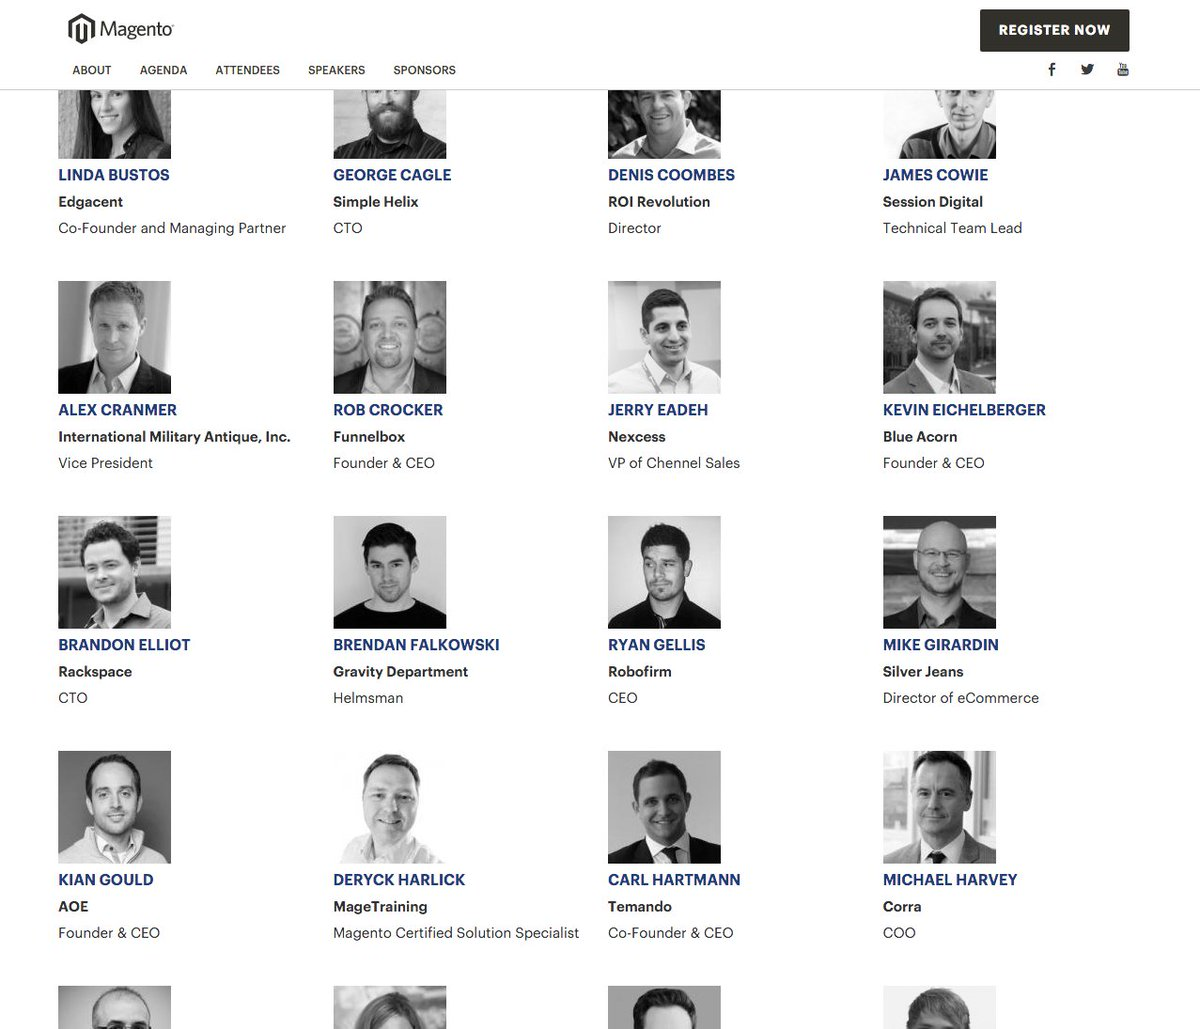 2016 speakers for @magento Imagine are posted: https://t.co/uoCbIfVe7A  Most unique job title. Drops mic. https://t.co/QmVKzFt5QA